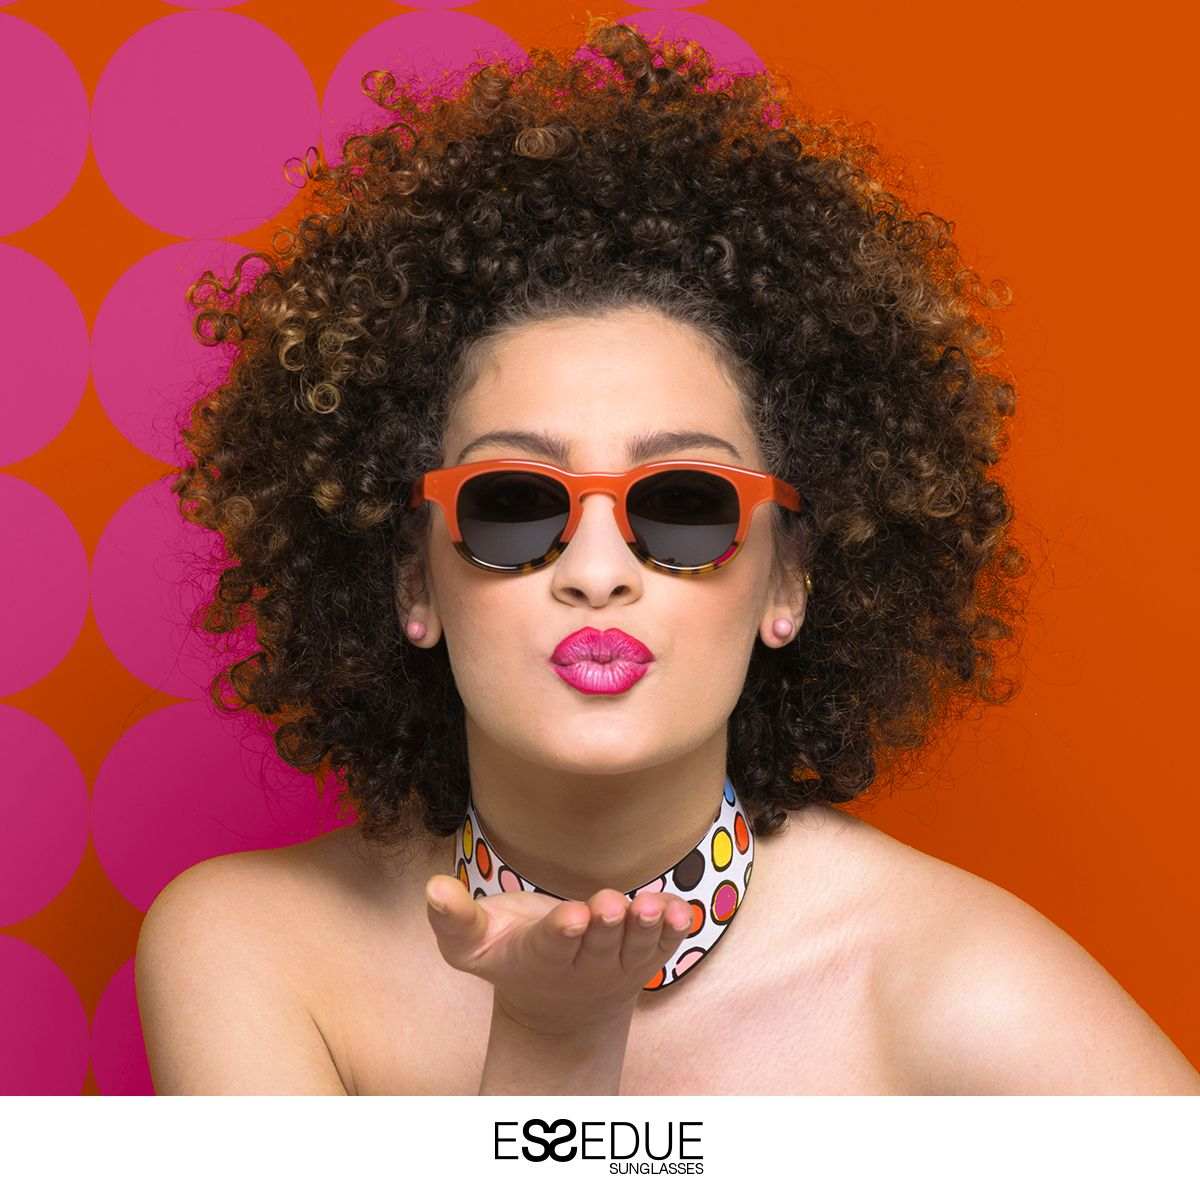 Kiss Kiss Kiss  ESSEDUE New Campaign Spring Summer '16  #essedue #afrogirl #afro #esseduesunglasses #handmadeinitaly #sunglasses #orange #popart #pop #glasses #optical